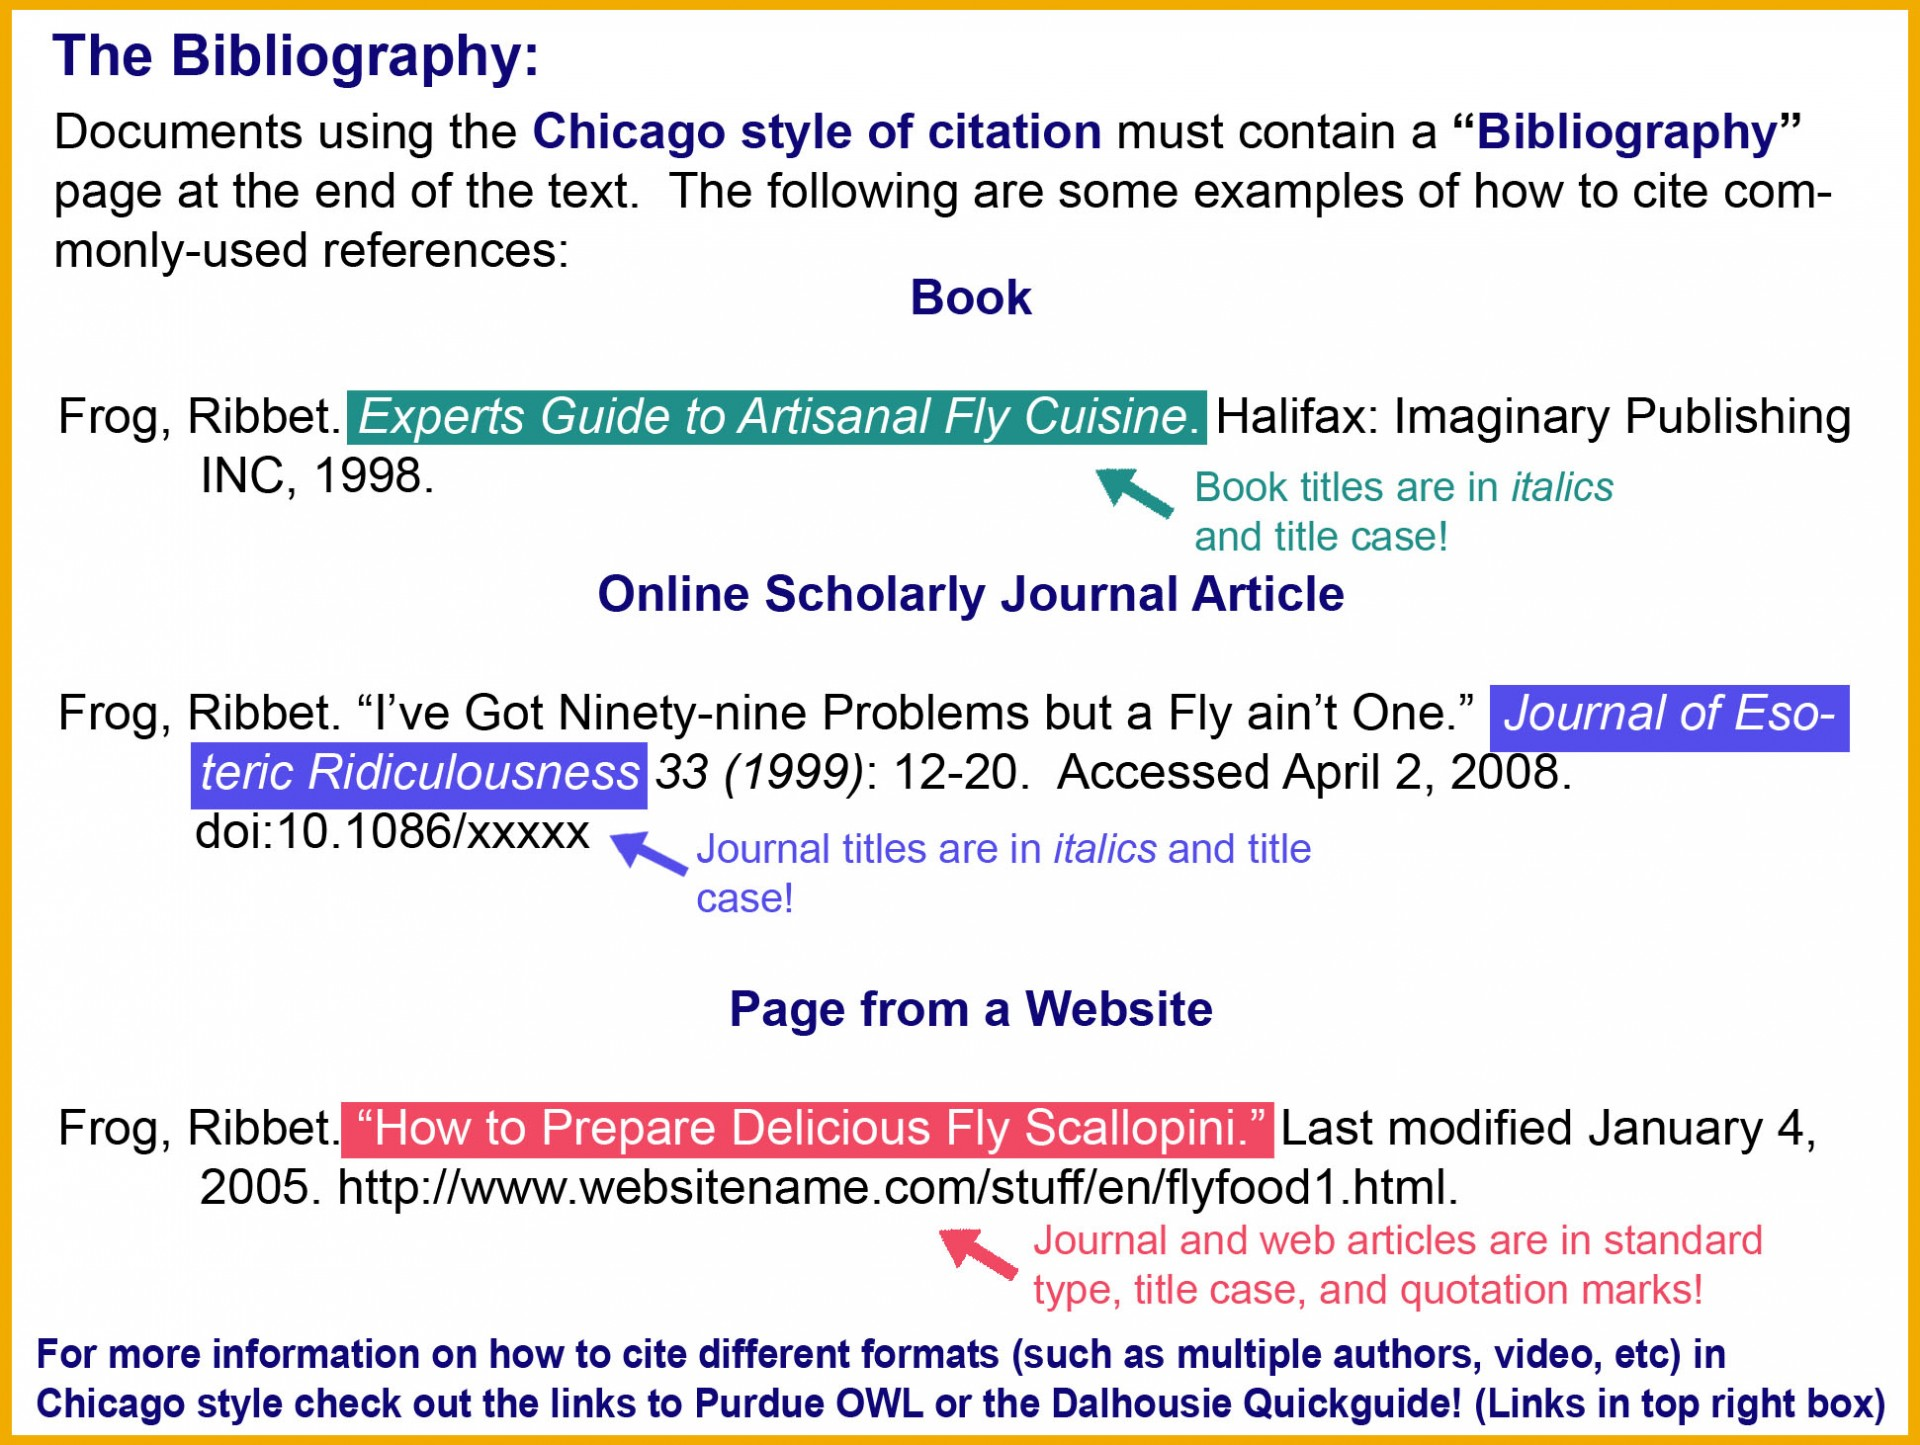 003 Chicago Workscited 06062016 Research Paper Footnotes In Wondrous A Style 1920